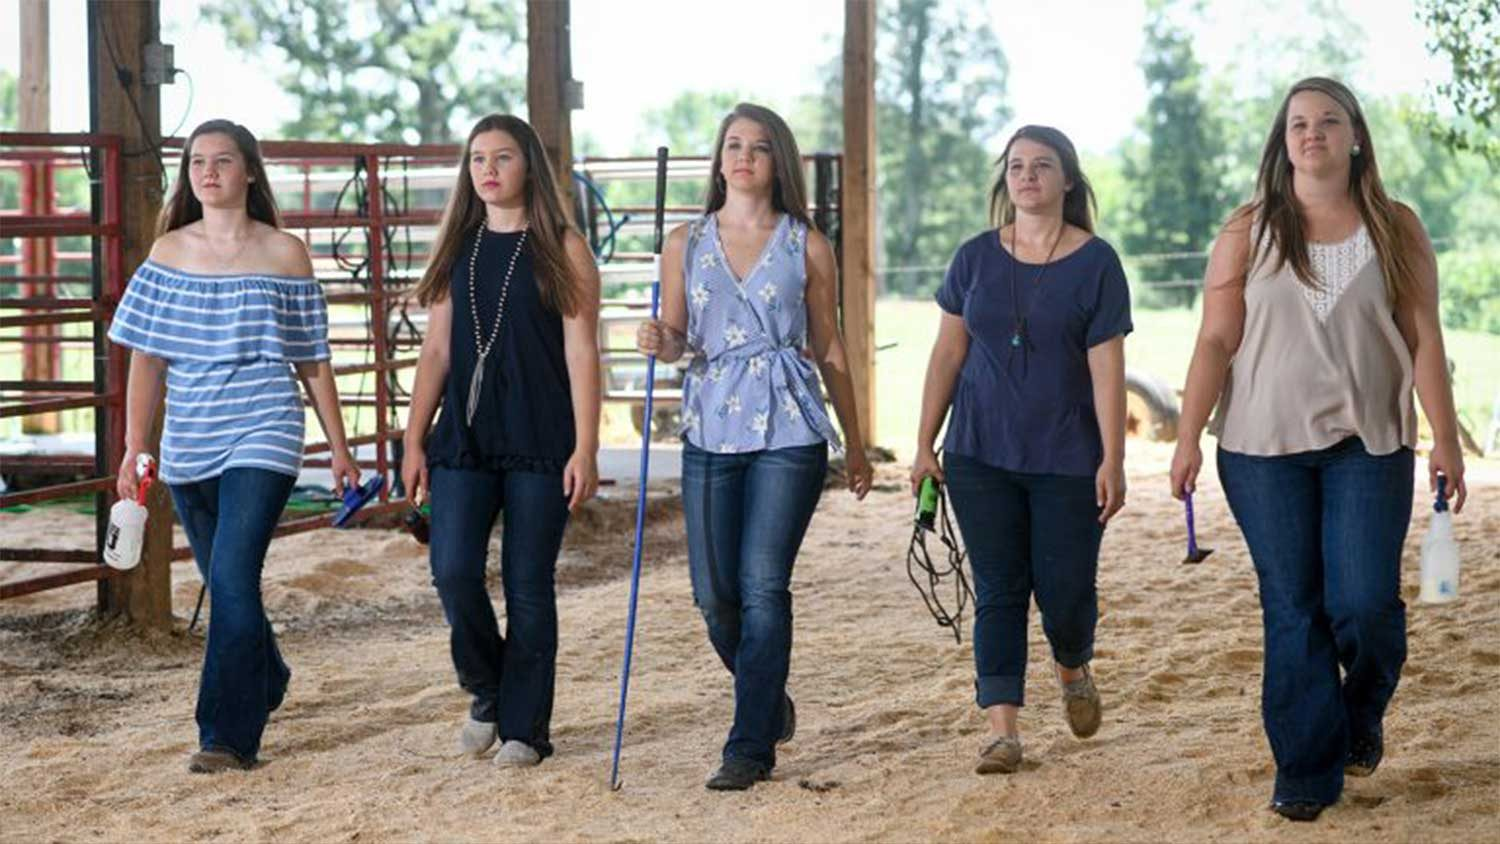 Five females walking with purpose in a barn